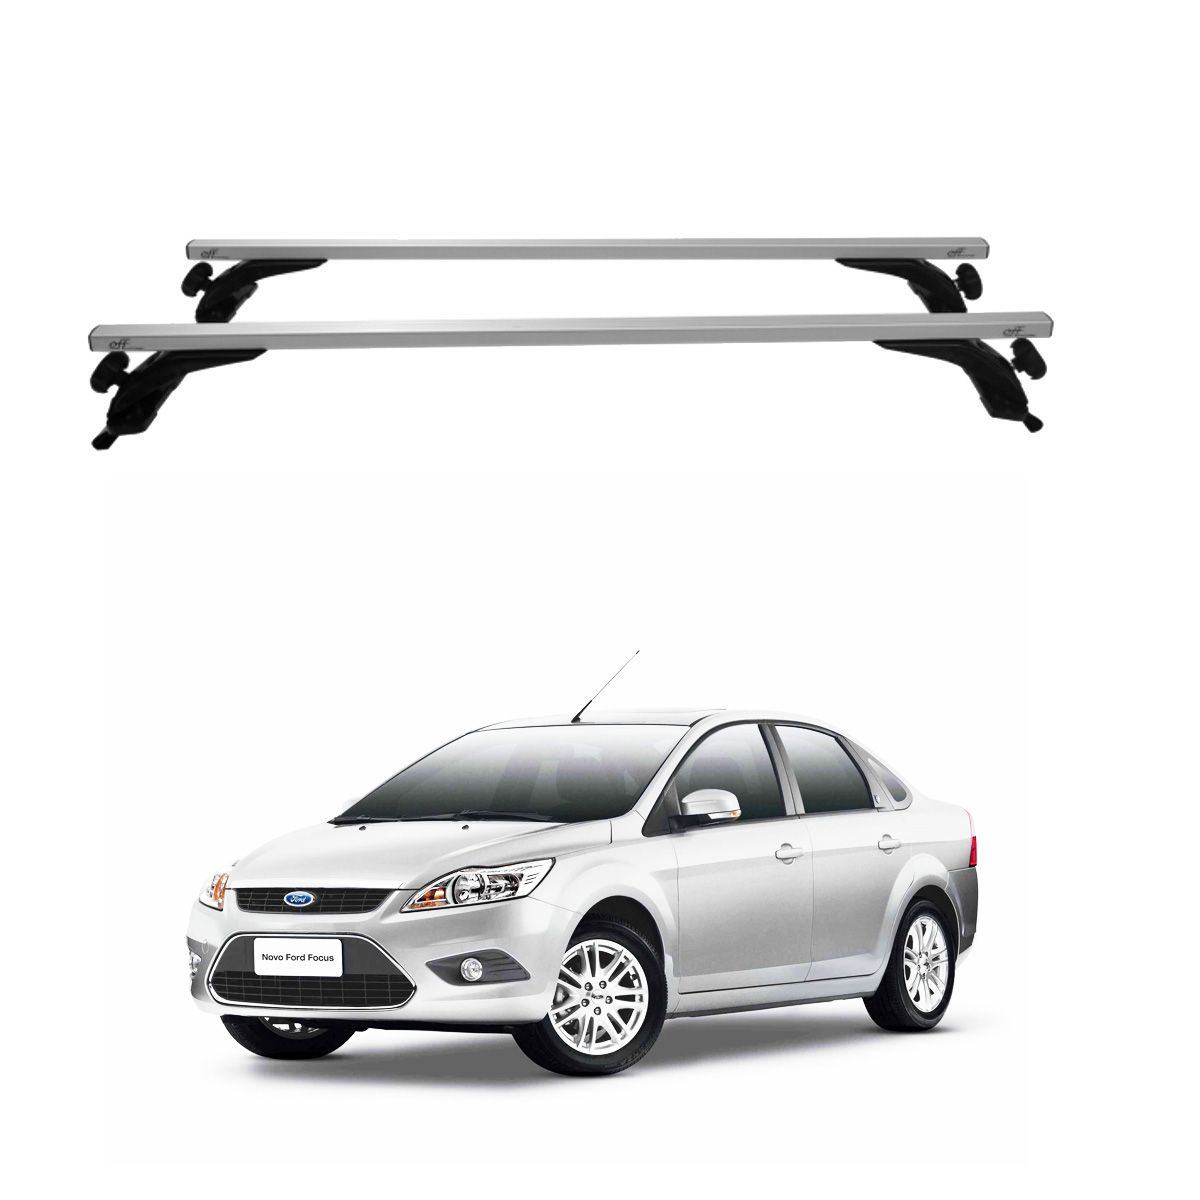 Rack Travessa de Teto Alumínio Prata Ford Focus Sedan